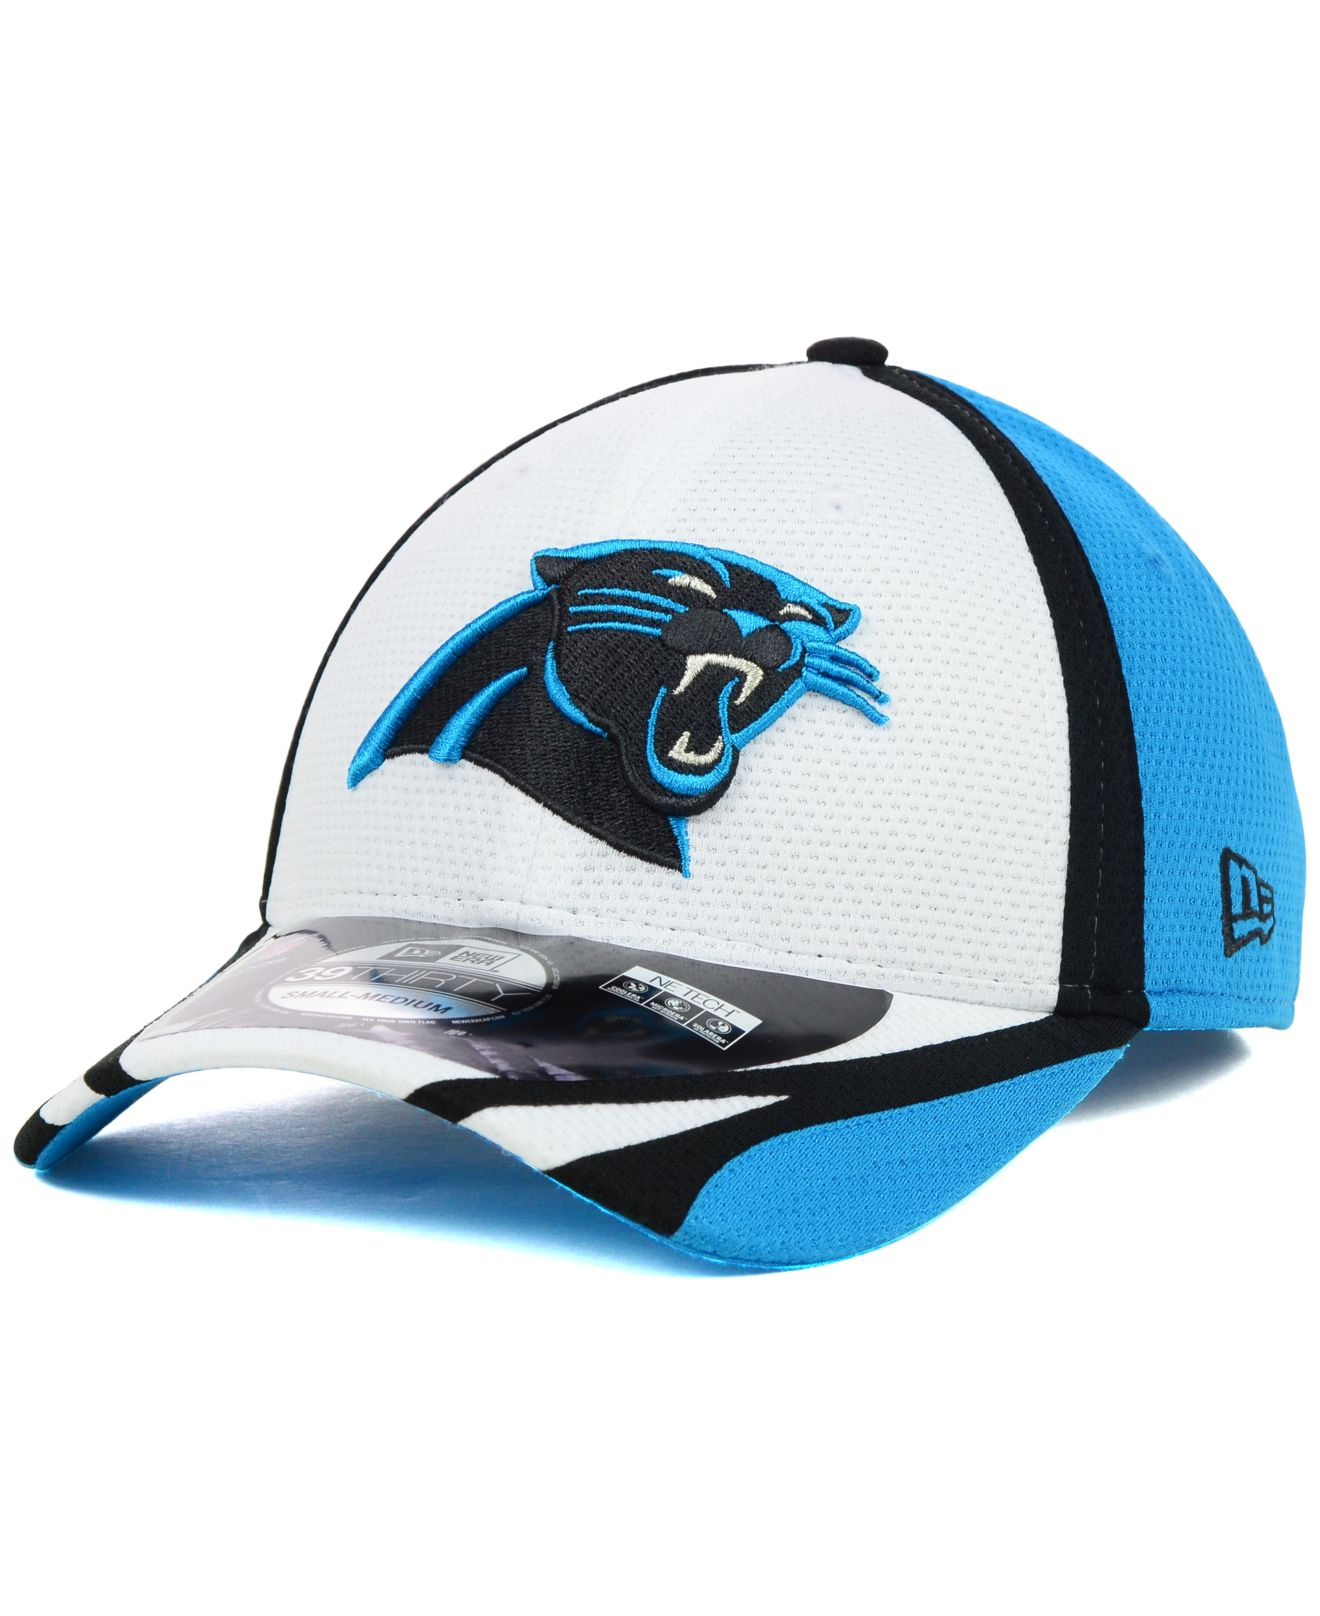 cea824908f50bf Lyst - KTZ Carolina Panthers Nfl Training Camp 39thirty Cap in Blue ...